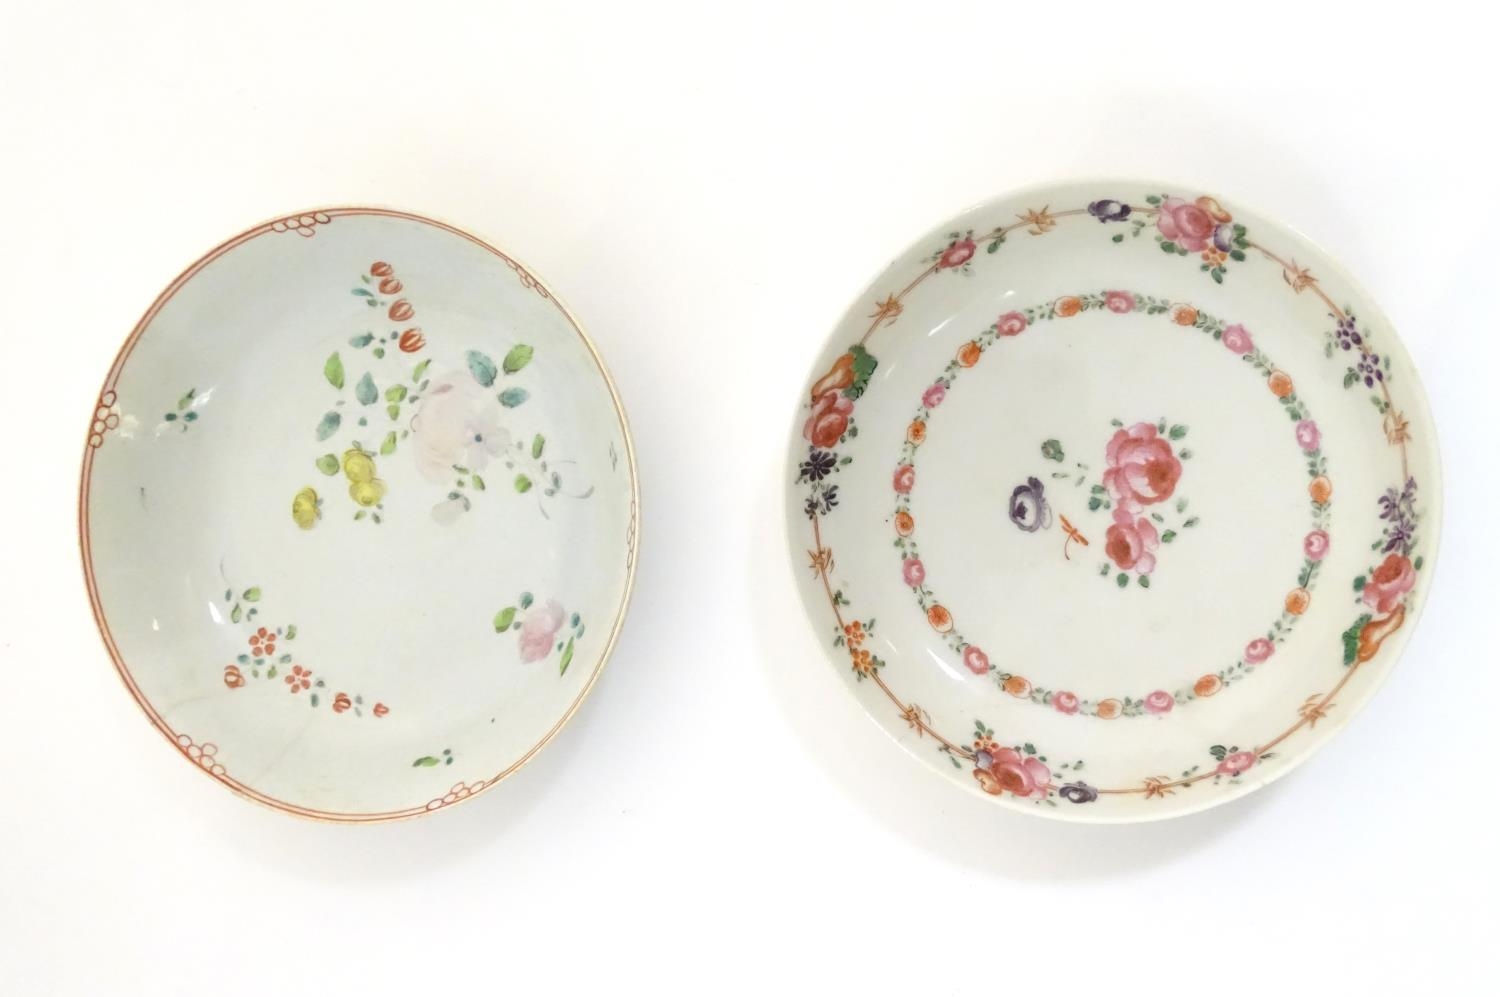 A New Hall style saucer with hand painted floral and foliate detail. Together with another. - Image 5 of 18